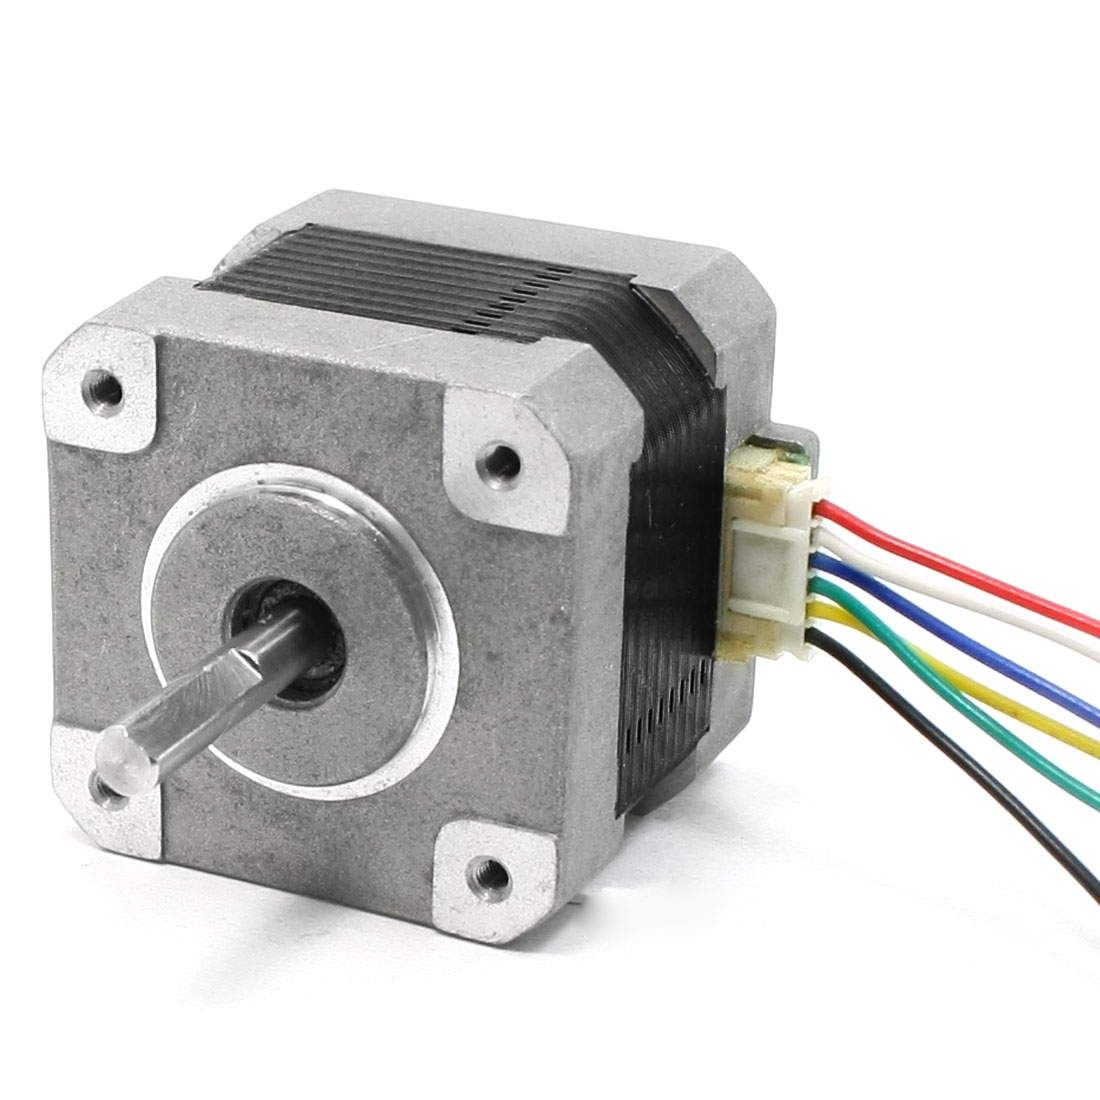 1000RPM Rotary Speed 1.2A 2.6kg.cm Torque 6 Wire 5mm Drive Shaft Stepping Motor